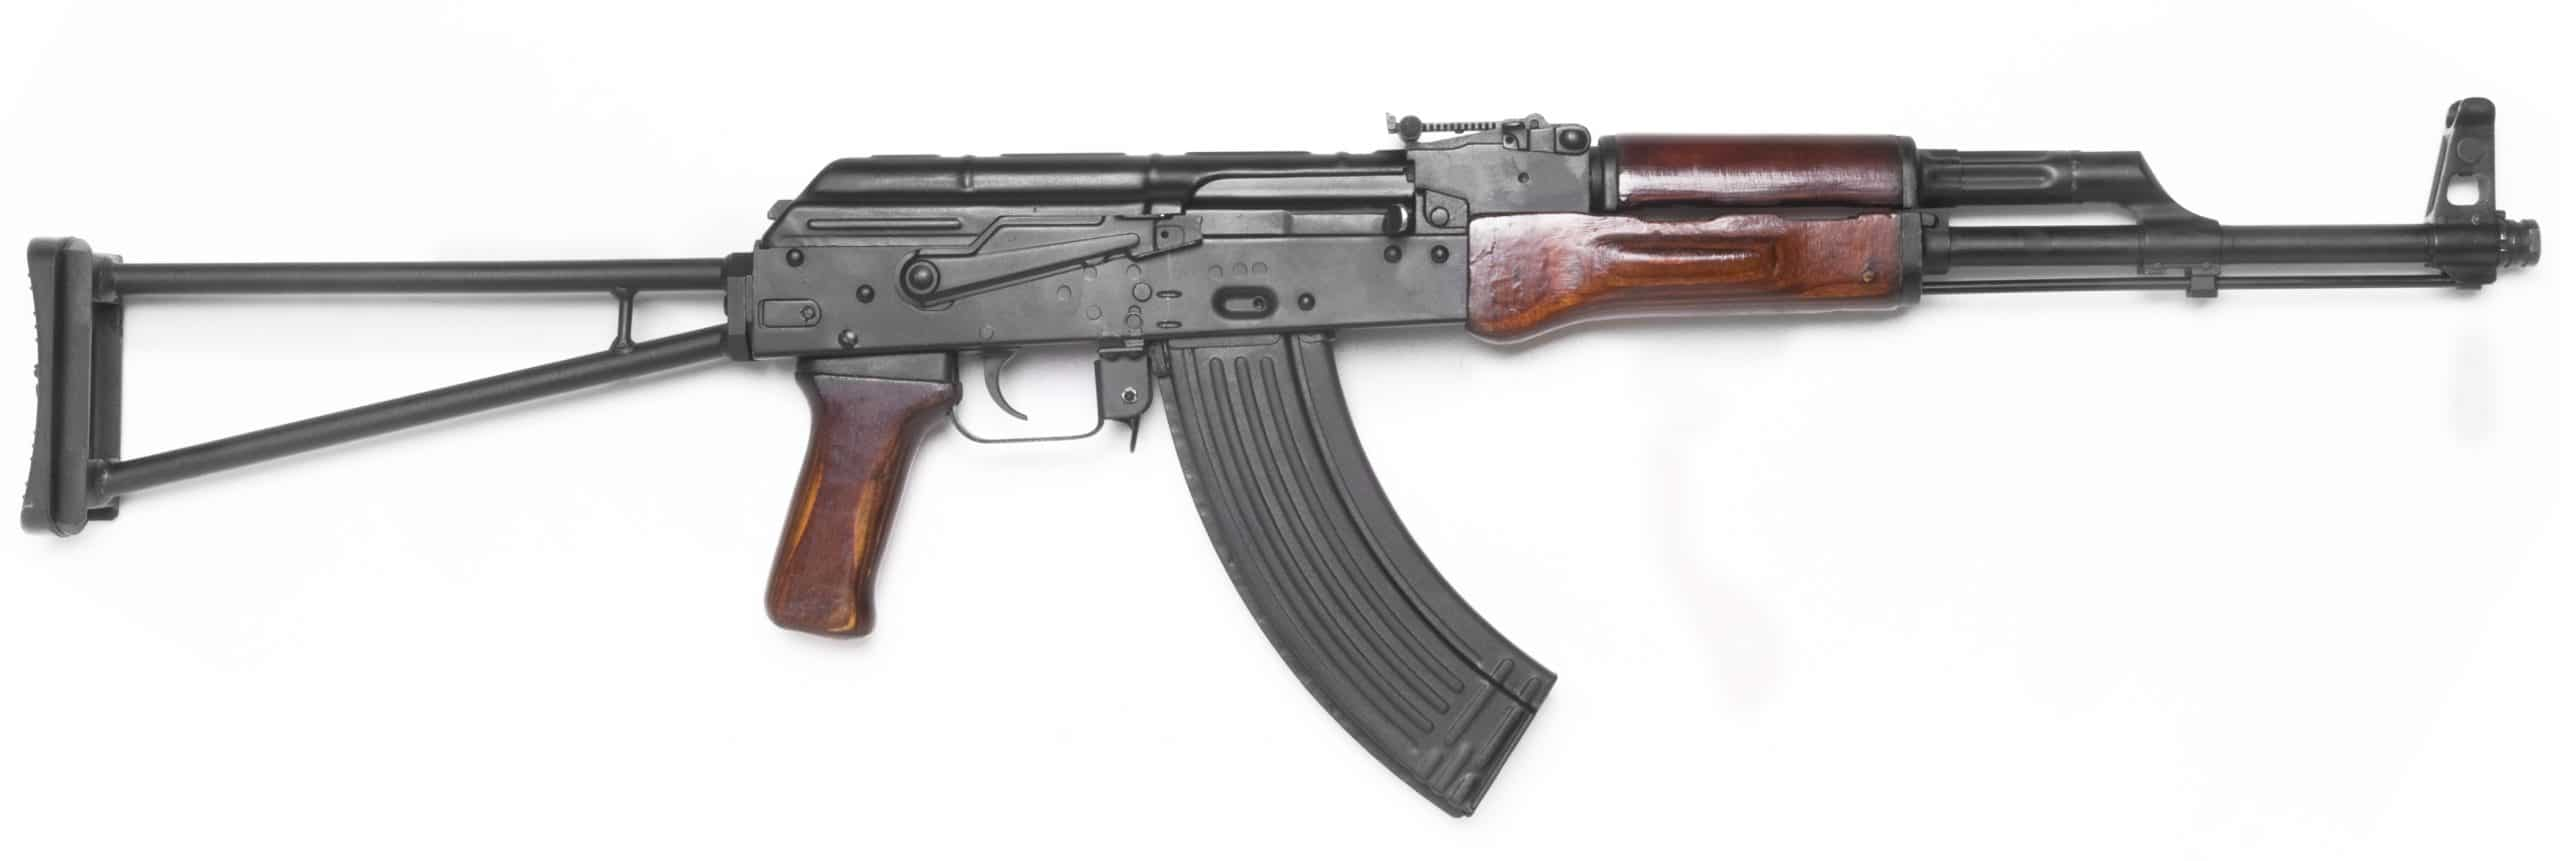 AK-47 Rifle in Sterling Heights